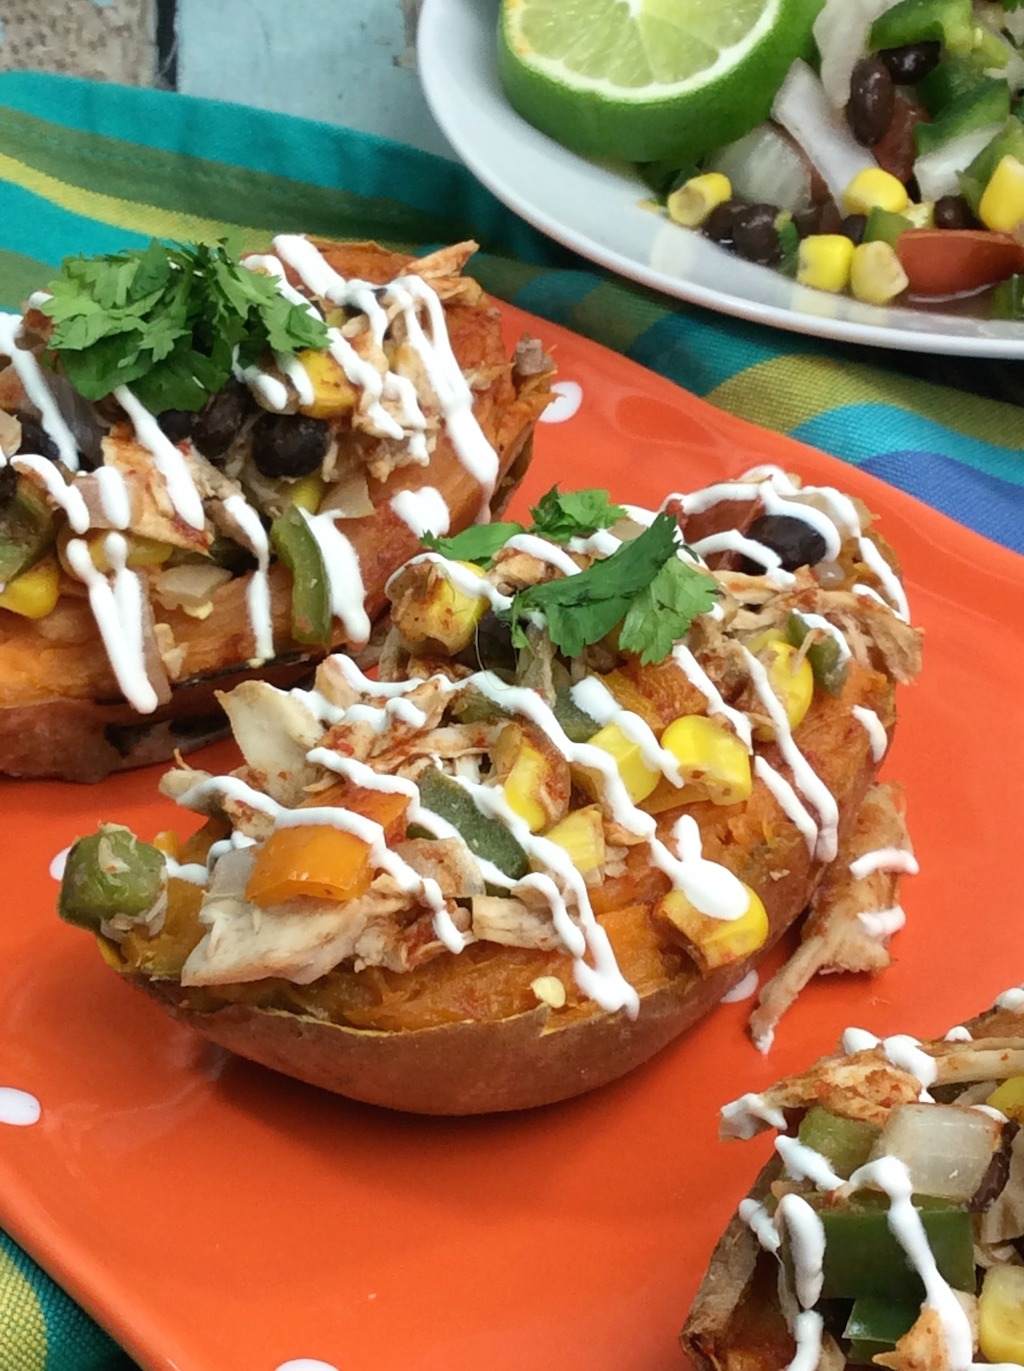 Mexican Stuffed Sweet Potato are loaded with fiber and vitamin A, but low in fat and calories. Made with rotisserie chicken stuffed sweet potatoes makes for a fast and easy baked sweet potato recipe.